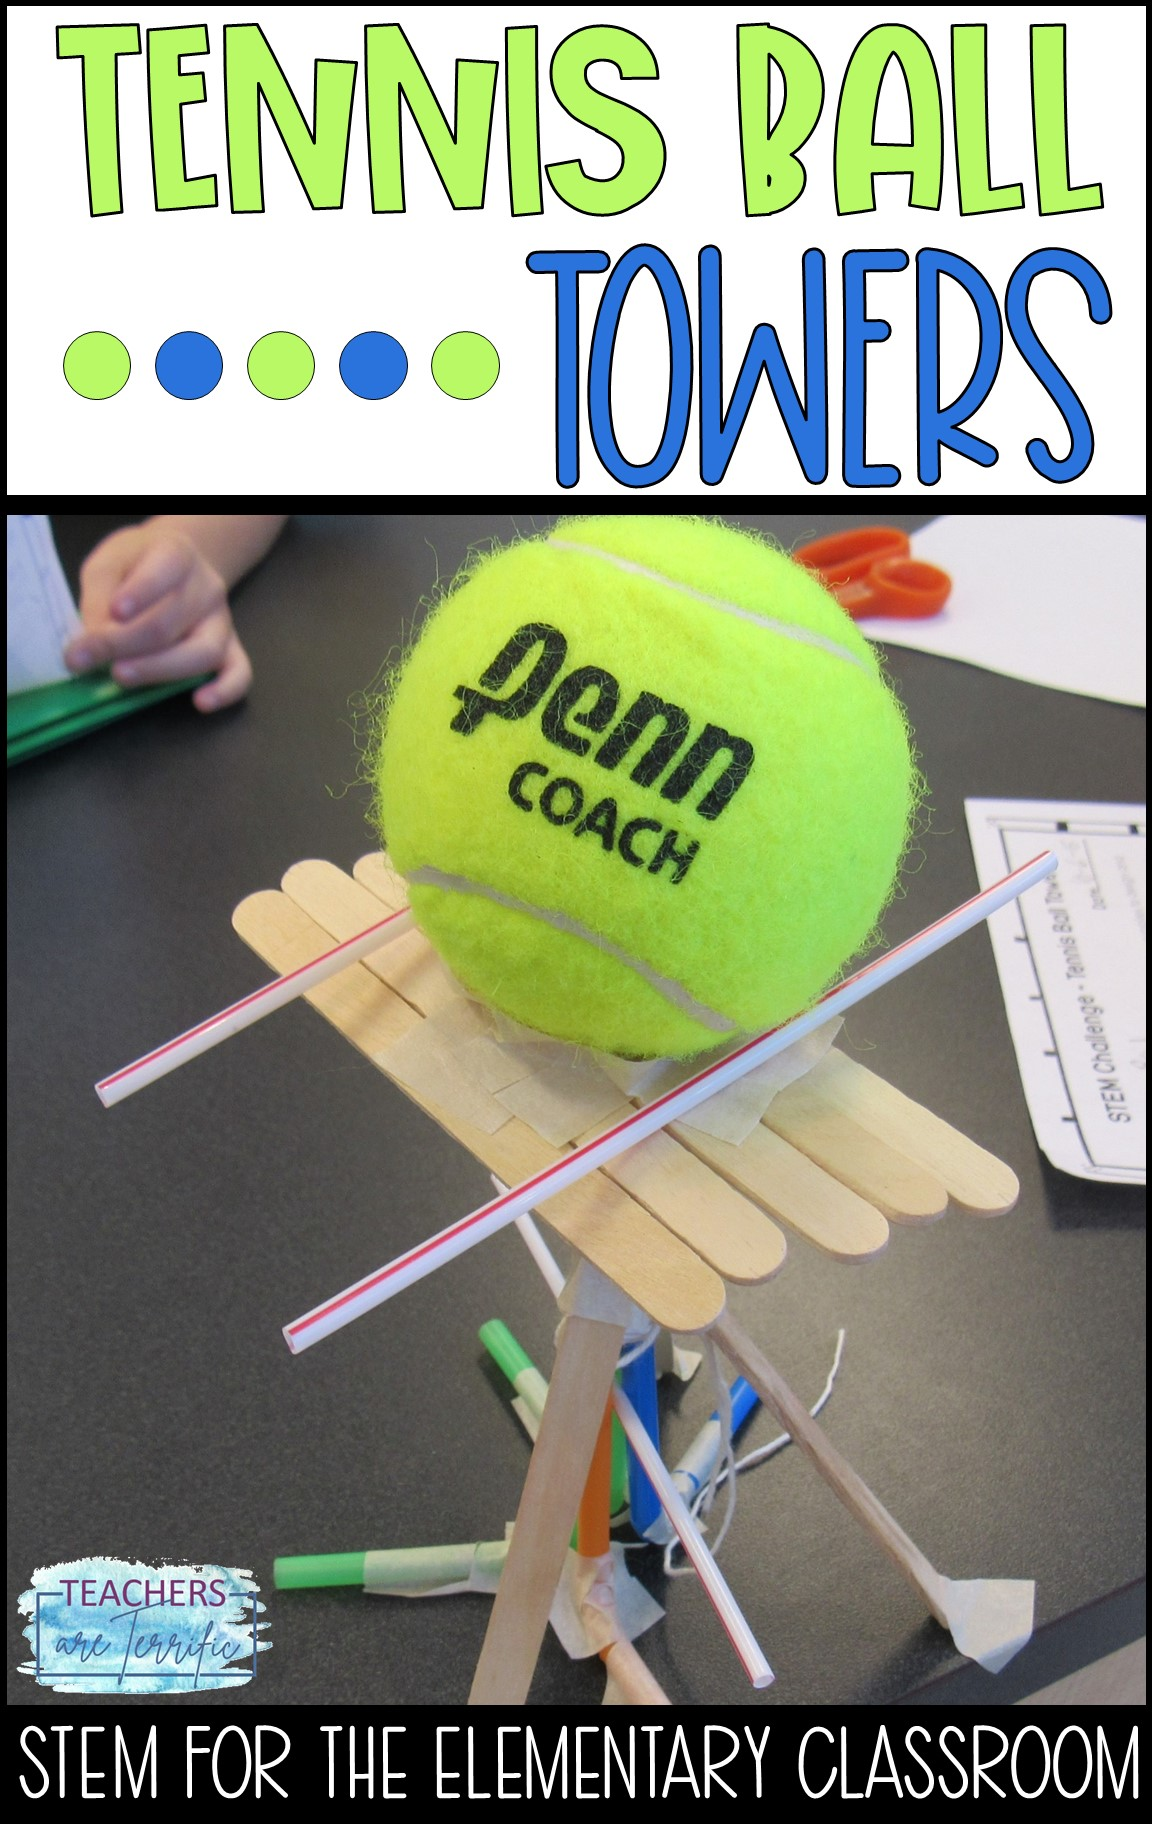 STEM Challenge for elementary students. Create a tower or platform that will hold a tennis ball aloft. This is more challenging than you expect. Straws are one of the materials.